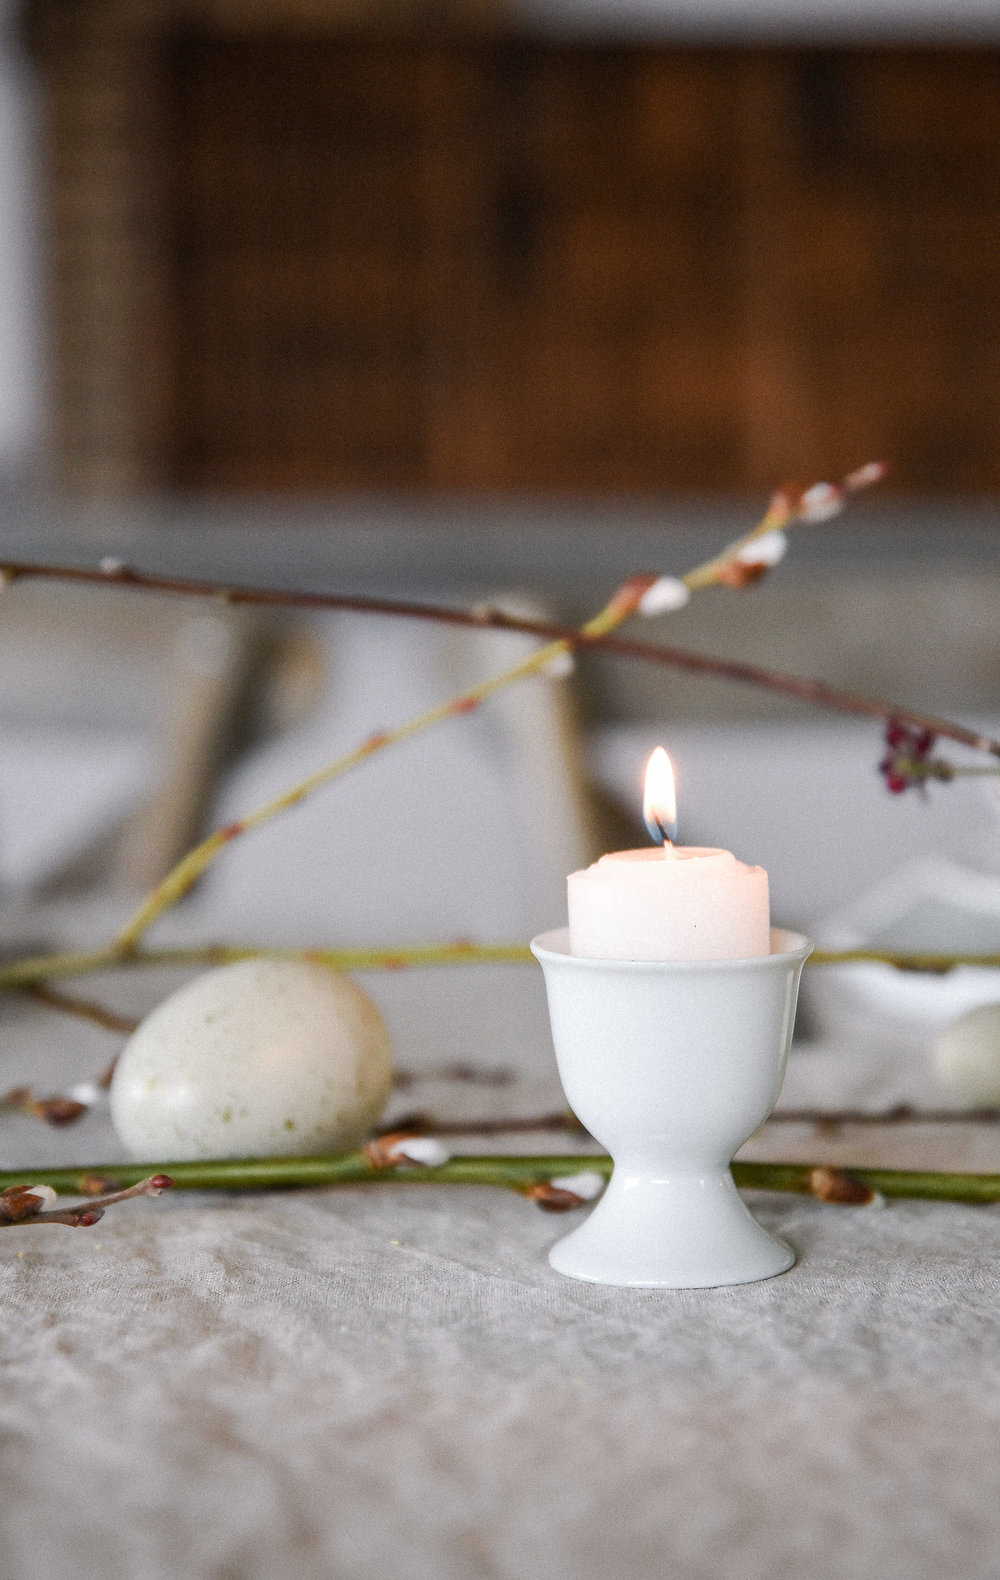 Easter table decorating ideas with using an egg cup as a candle holder   boxwoodavenue.com #easterdecor #eastertable #eastertablescape